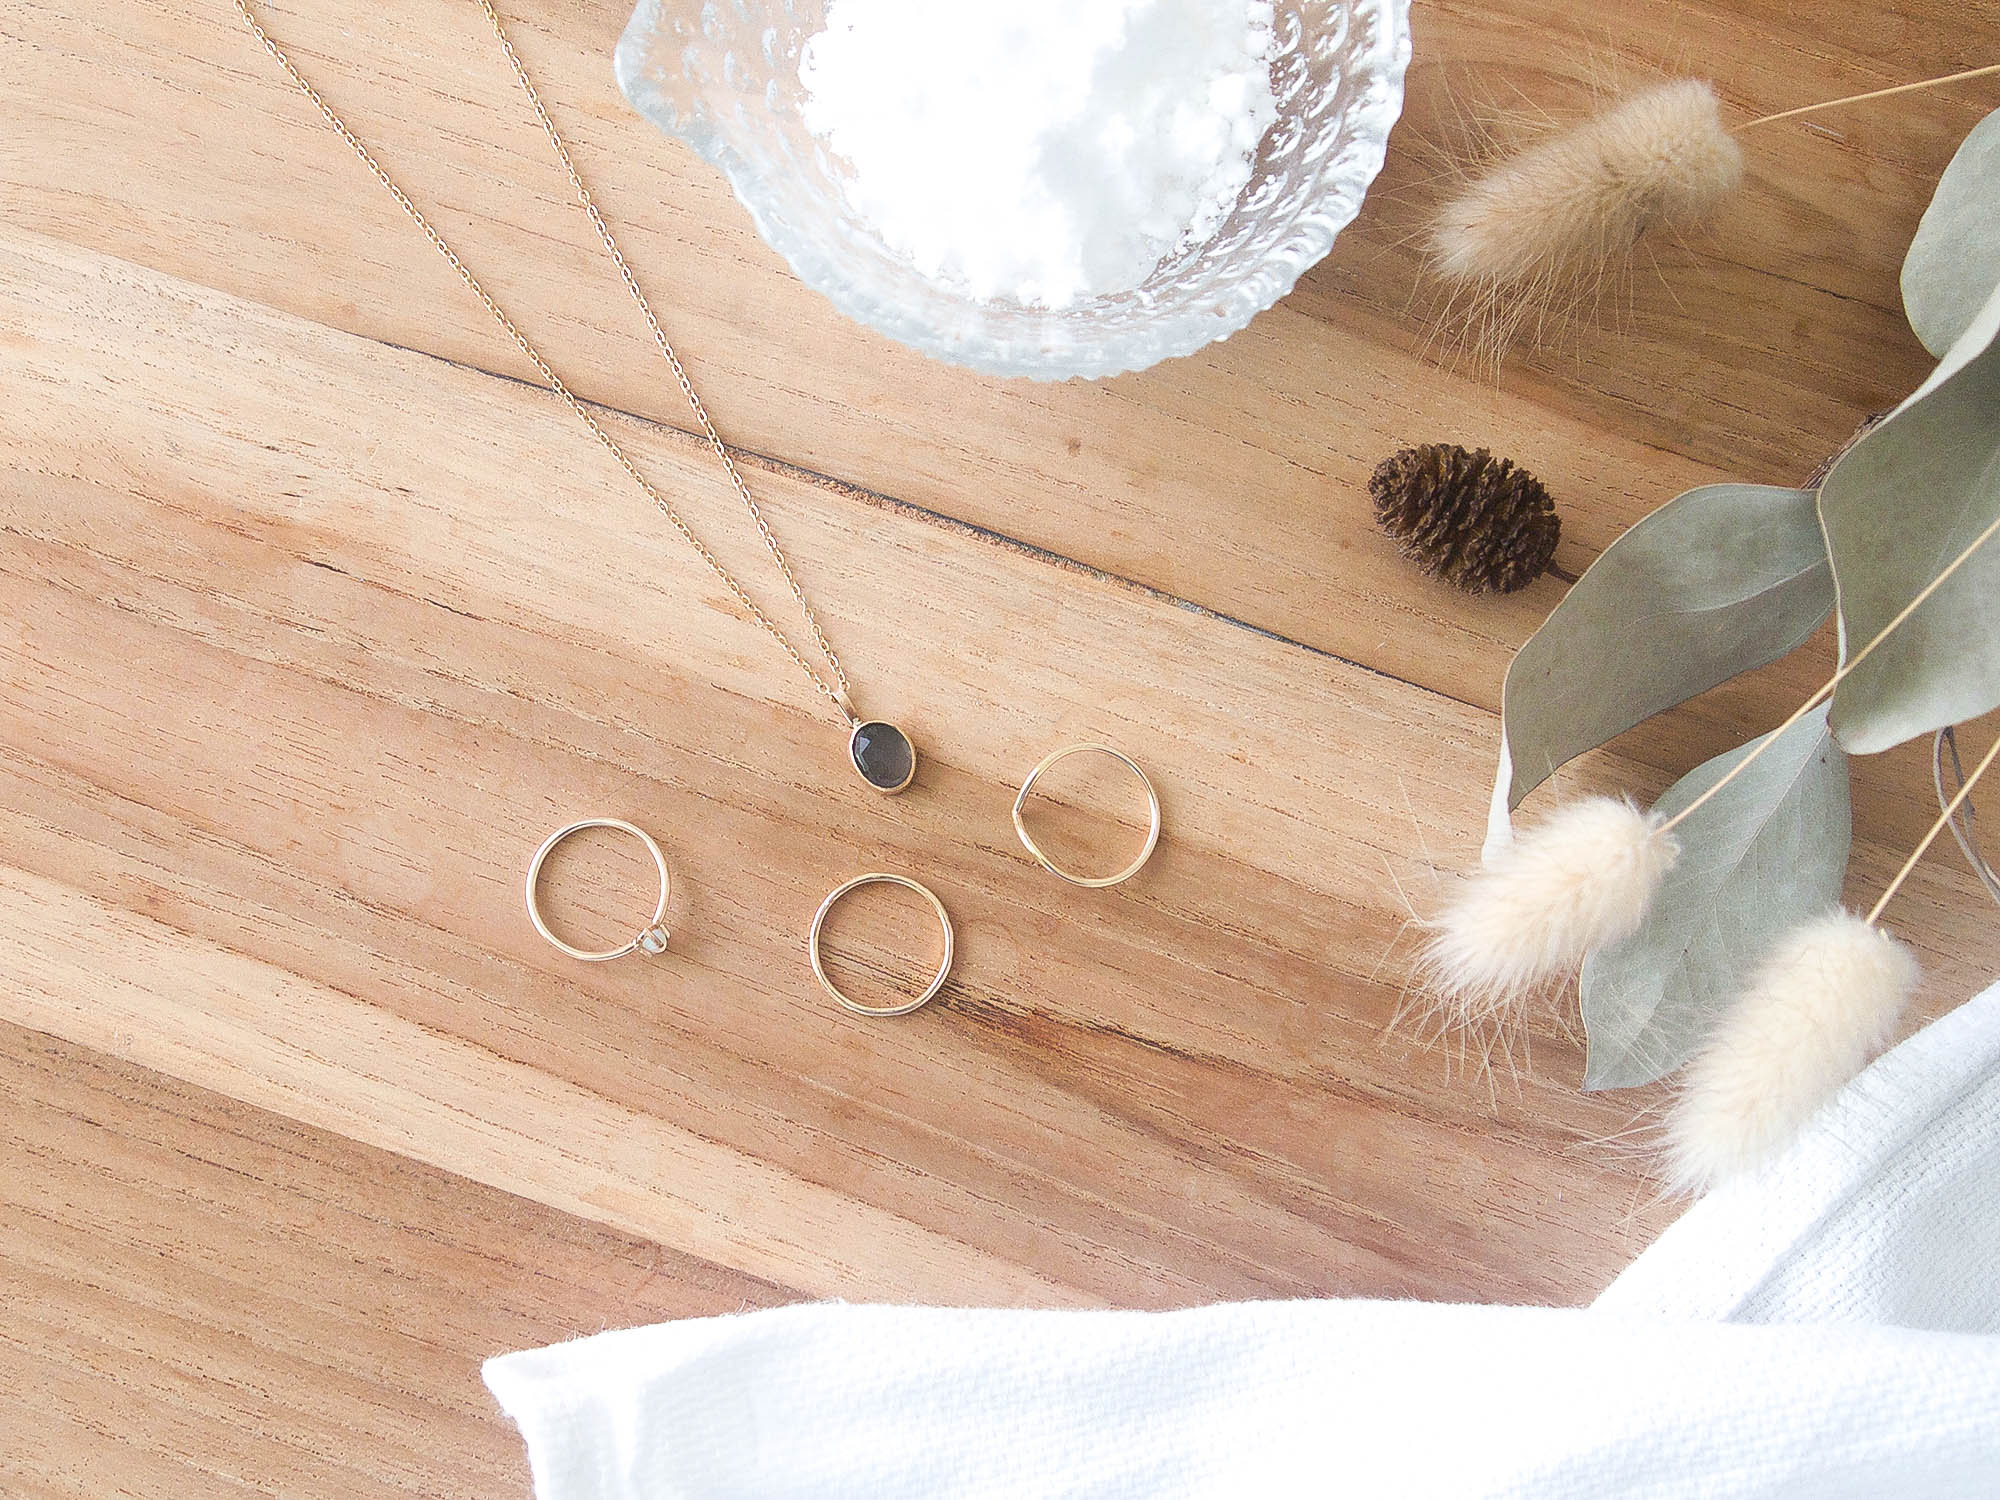 At home jewelry cleaning solution